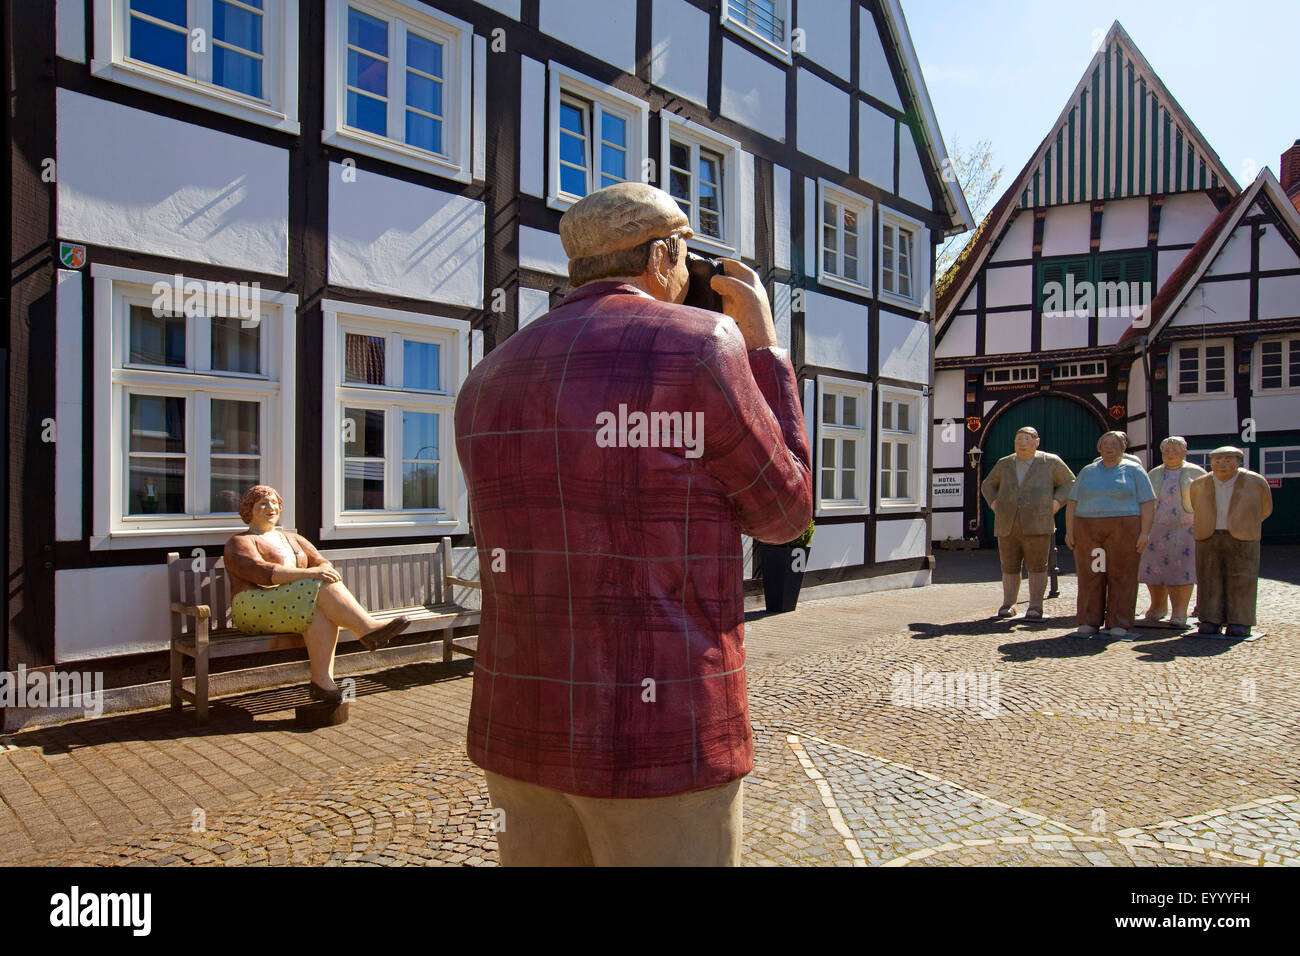 'Alltagsmenschen' in the historic old town of Wiedenbrueck, Germany, North Rhine-Westphalia, East Westphalia, - Stock Image